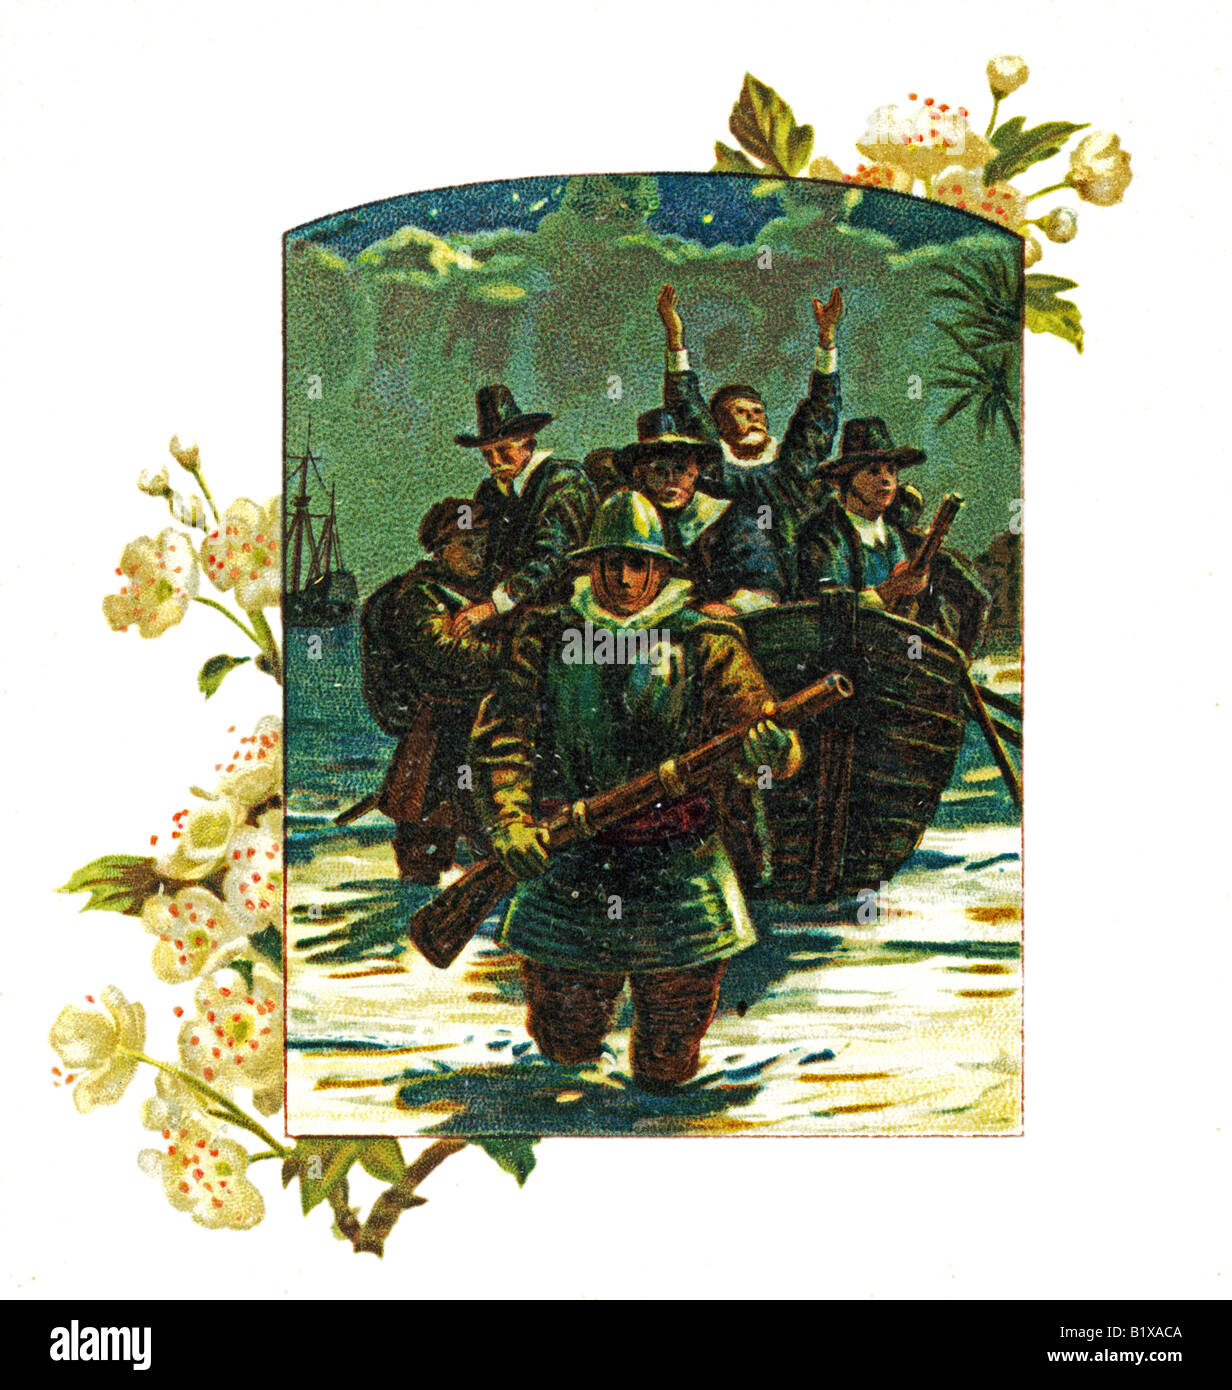 Illustration from The Landing of the Pilgrim Fathers a Victorian illustrated poetry book  FOR EDITORIAL USE ONLY - Stock Image